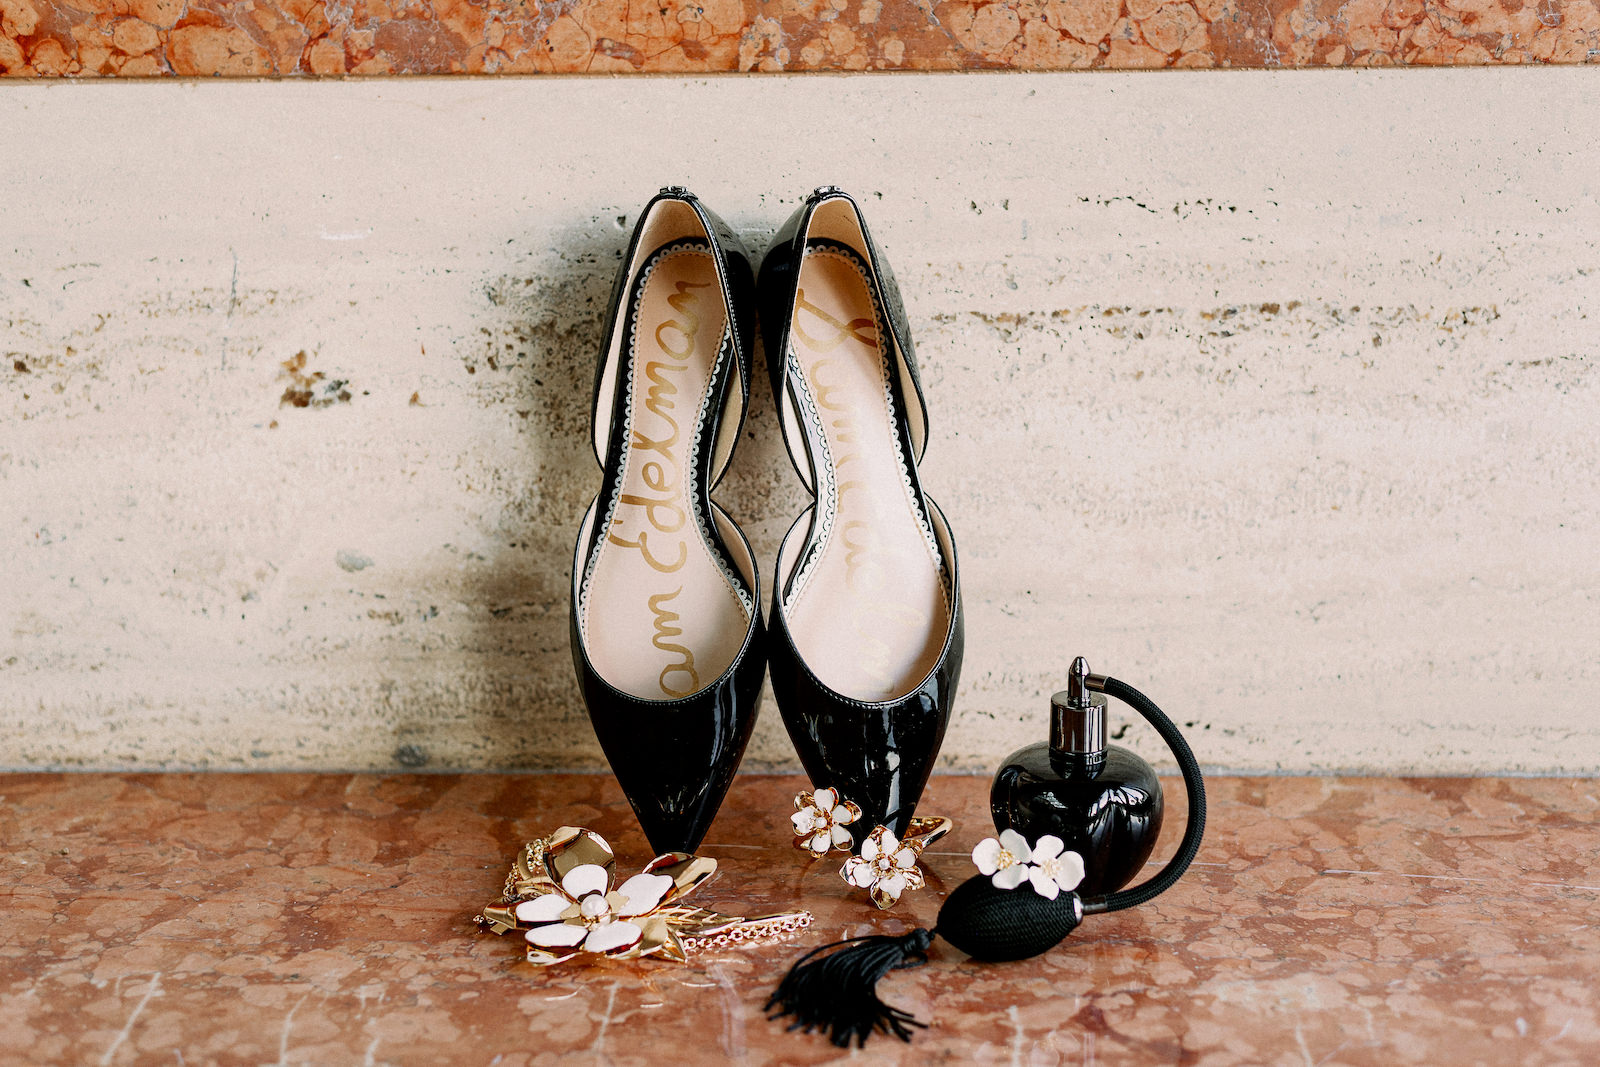 Wedding Bridal Accessories Patent Leather Black Designer Flats by Sam Edelman   Black Perfume Bottle with White and Gold Flower Statement Necklace Cuff Bracelet and Stud Earrings Wedding Jewelry